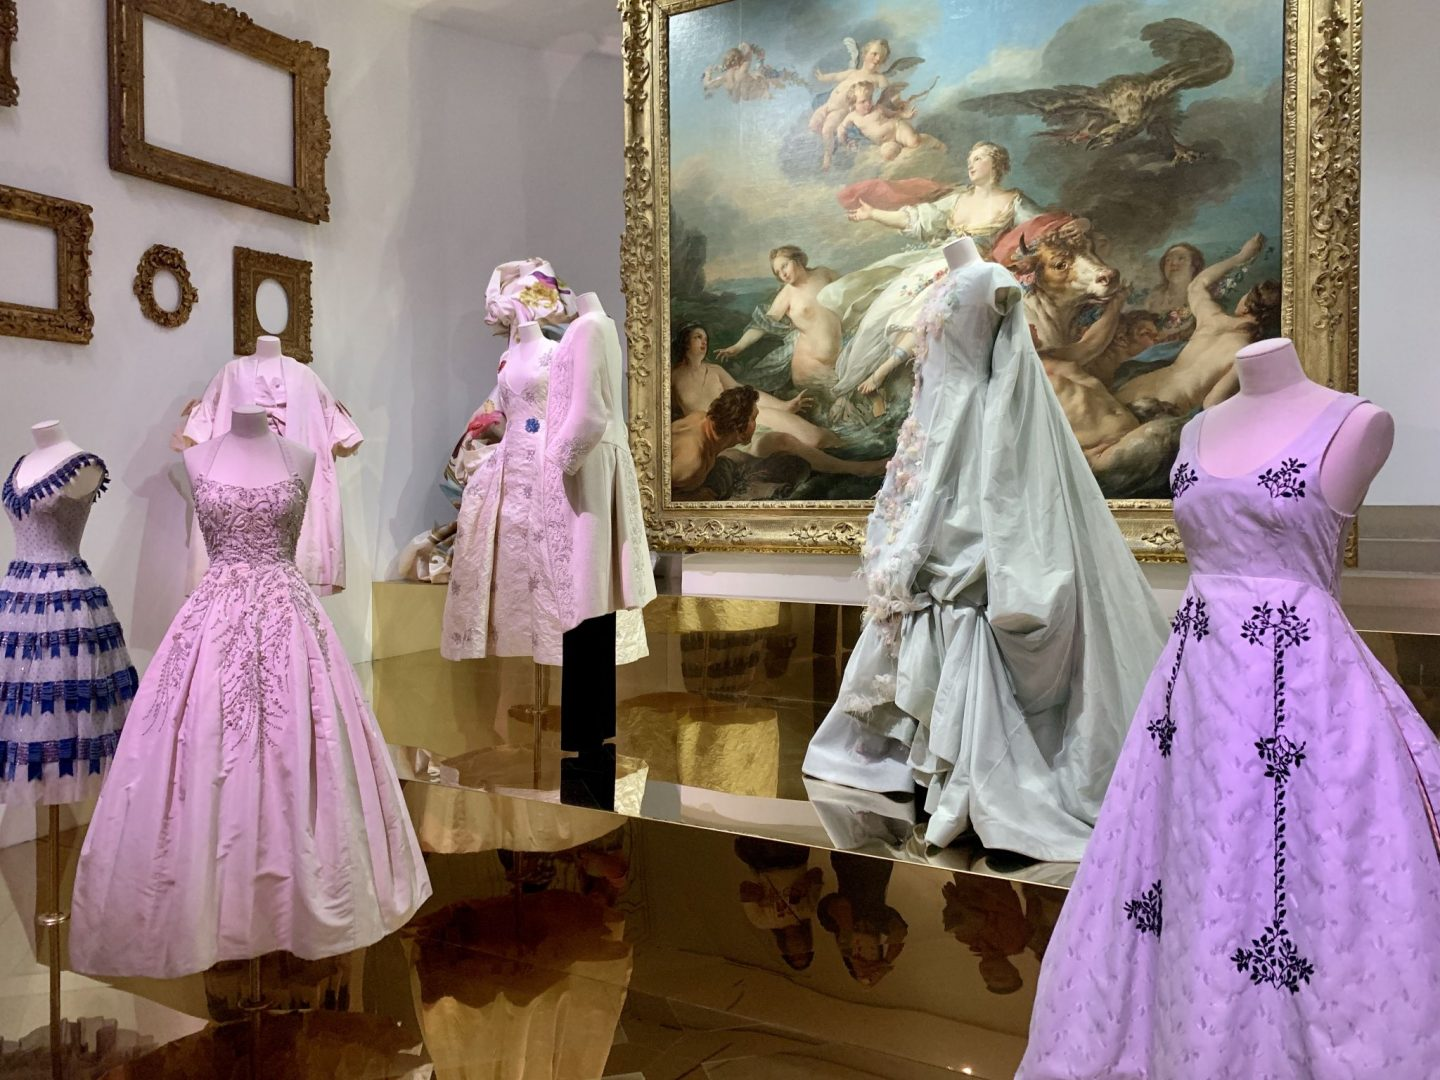 Christian Dior Art Exhibit at the Dallas Museum of Art